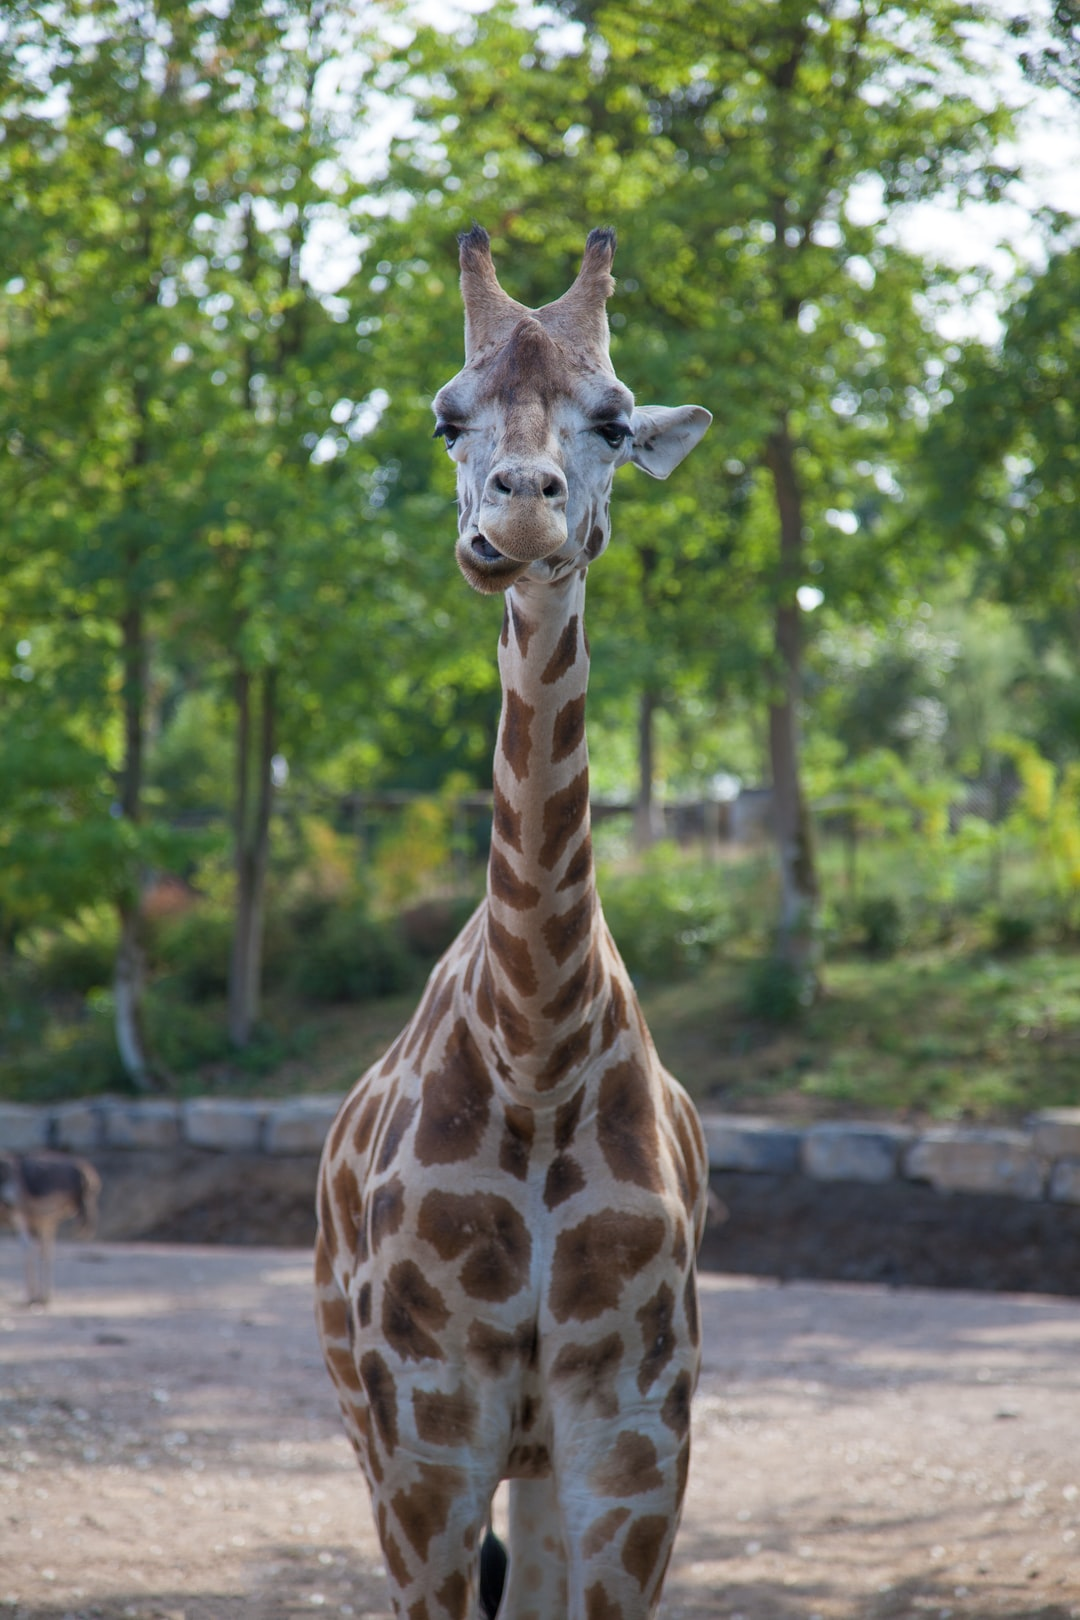 Giraffe with a goofy expression.